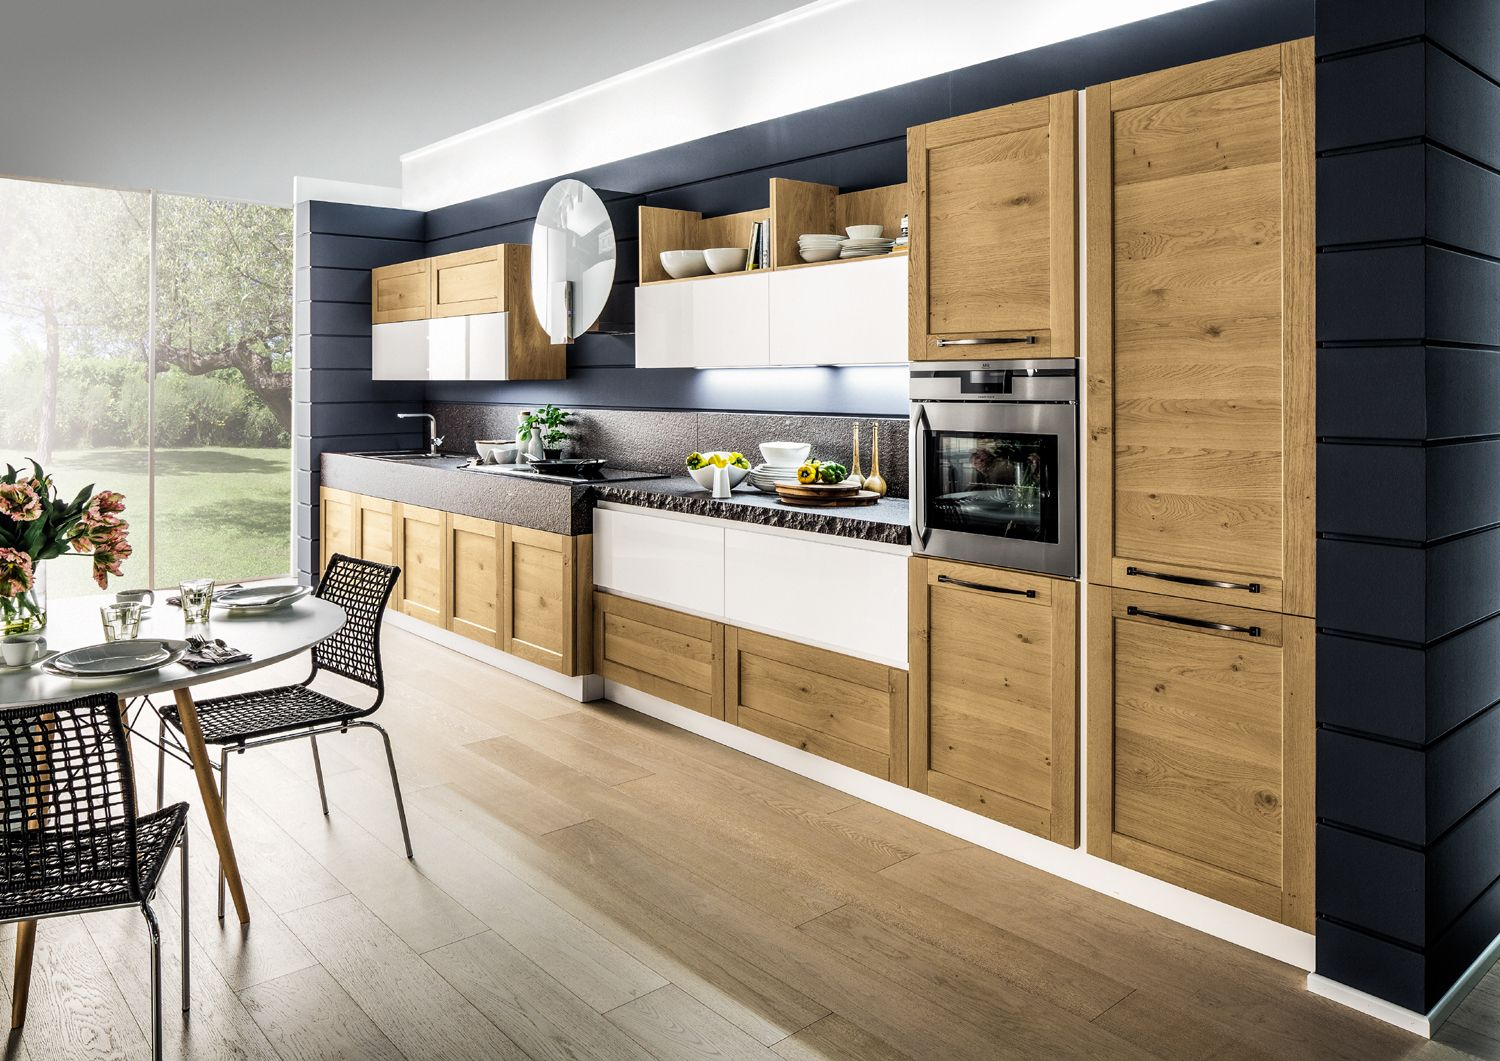 Pin By Arrex Le Cucine On Mille Idee Per La Tua Cucina Lineare Kitchen Dining Kitchen Kitchen Cabinets